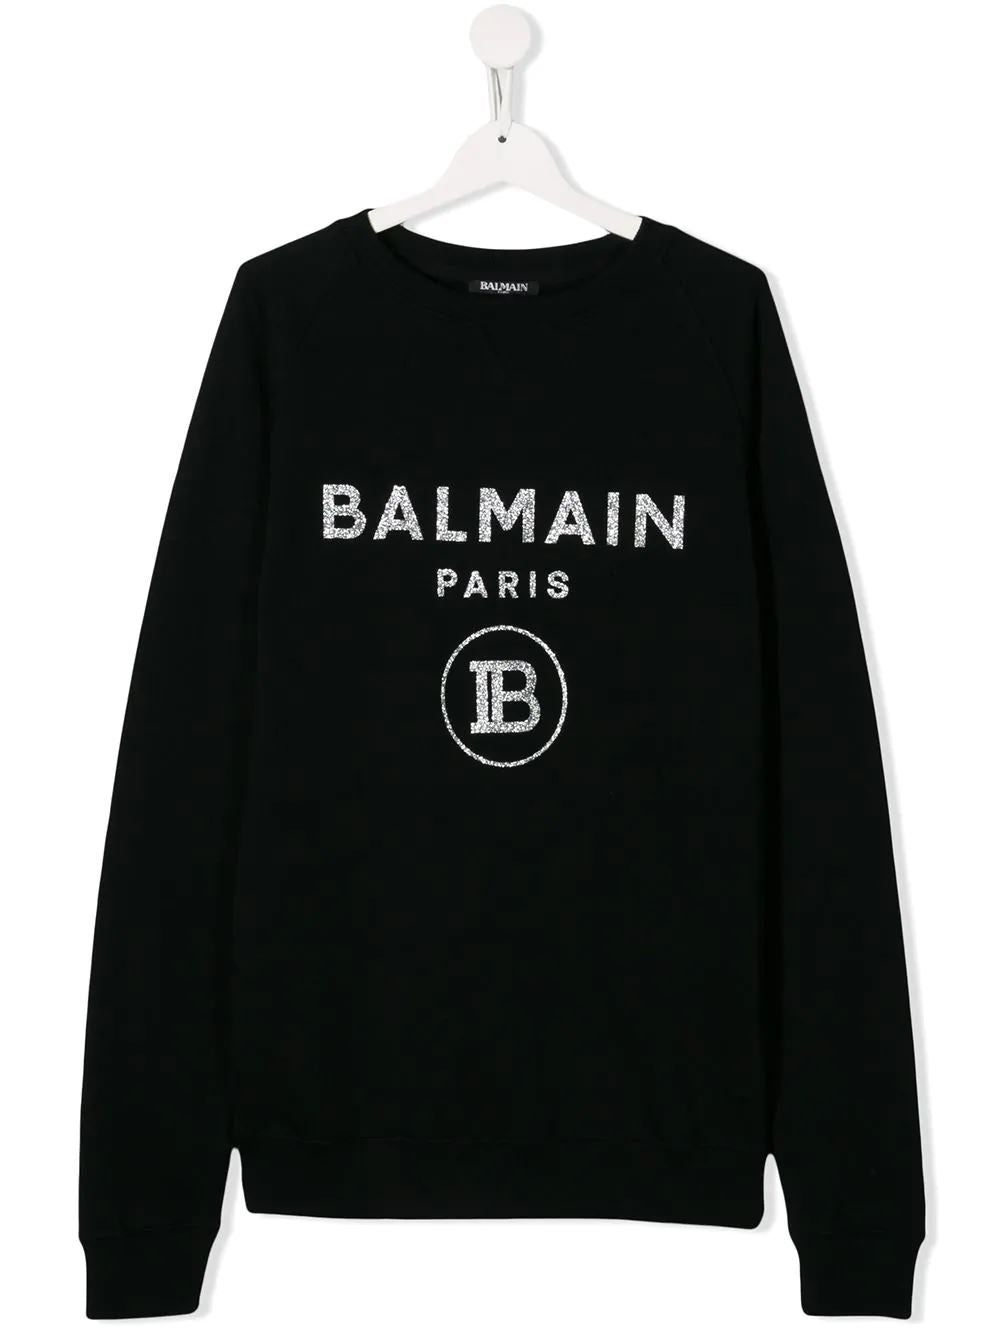 BALMAIN KIDS printed logo sweatshirt black - Maison De Fashion